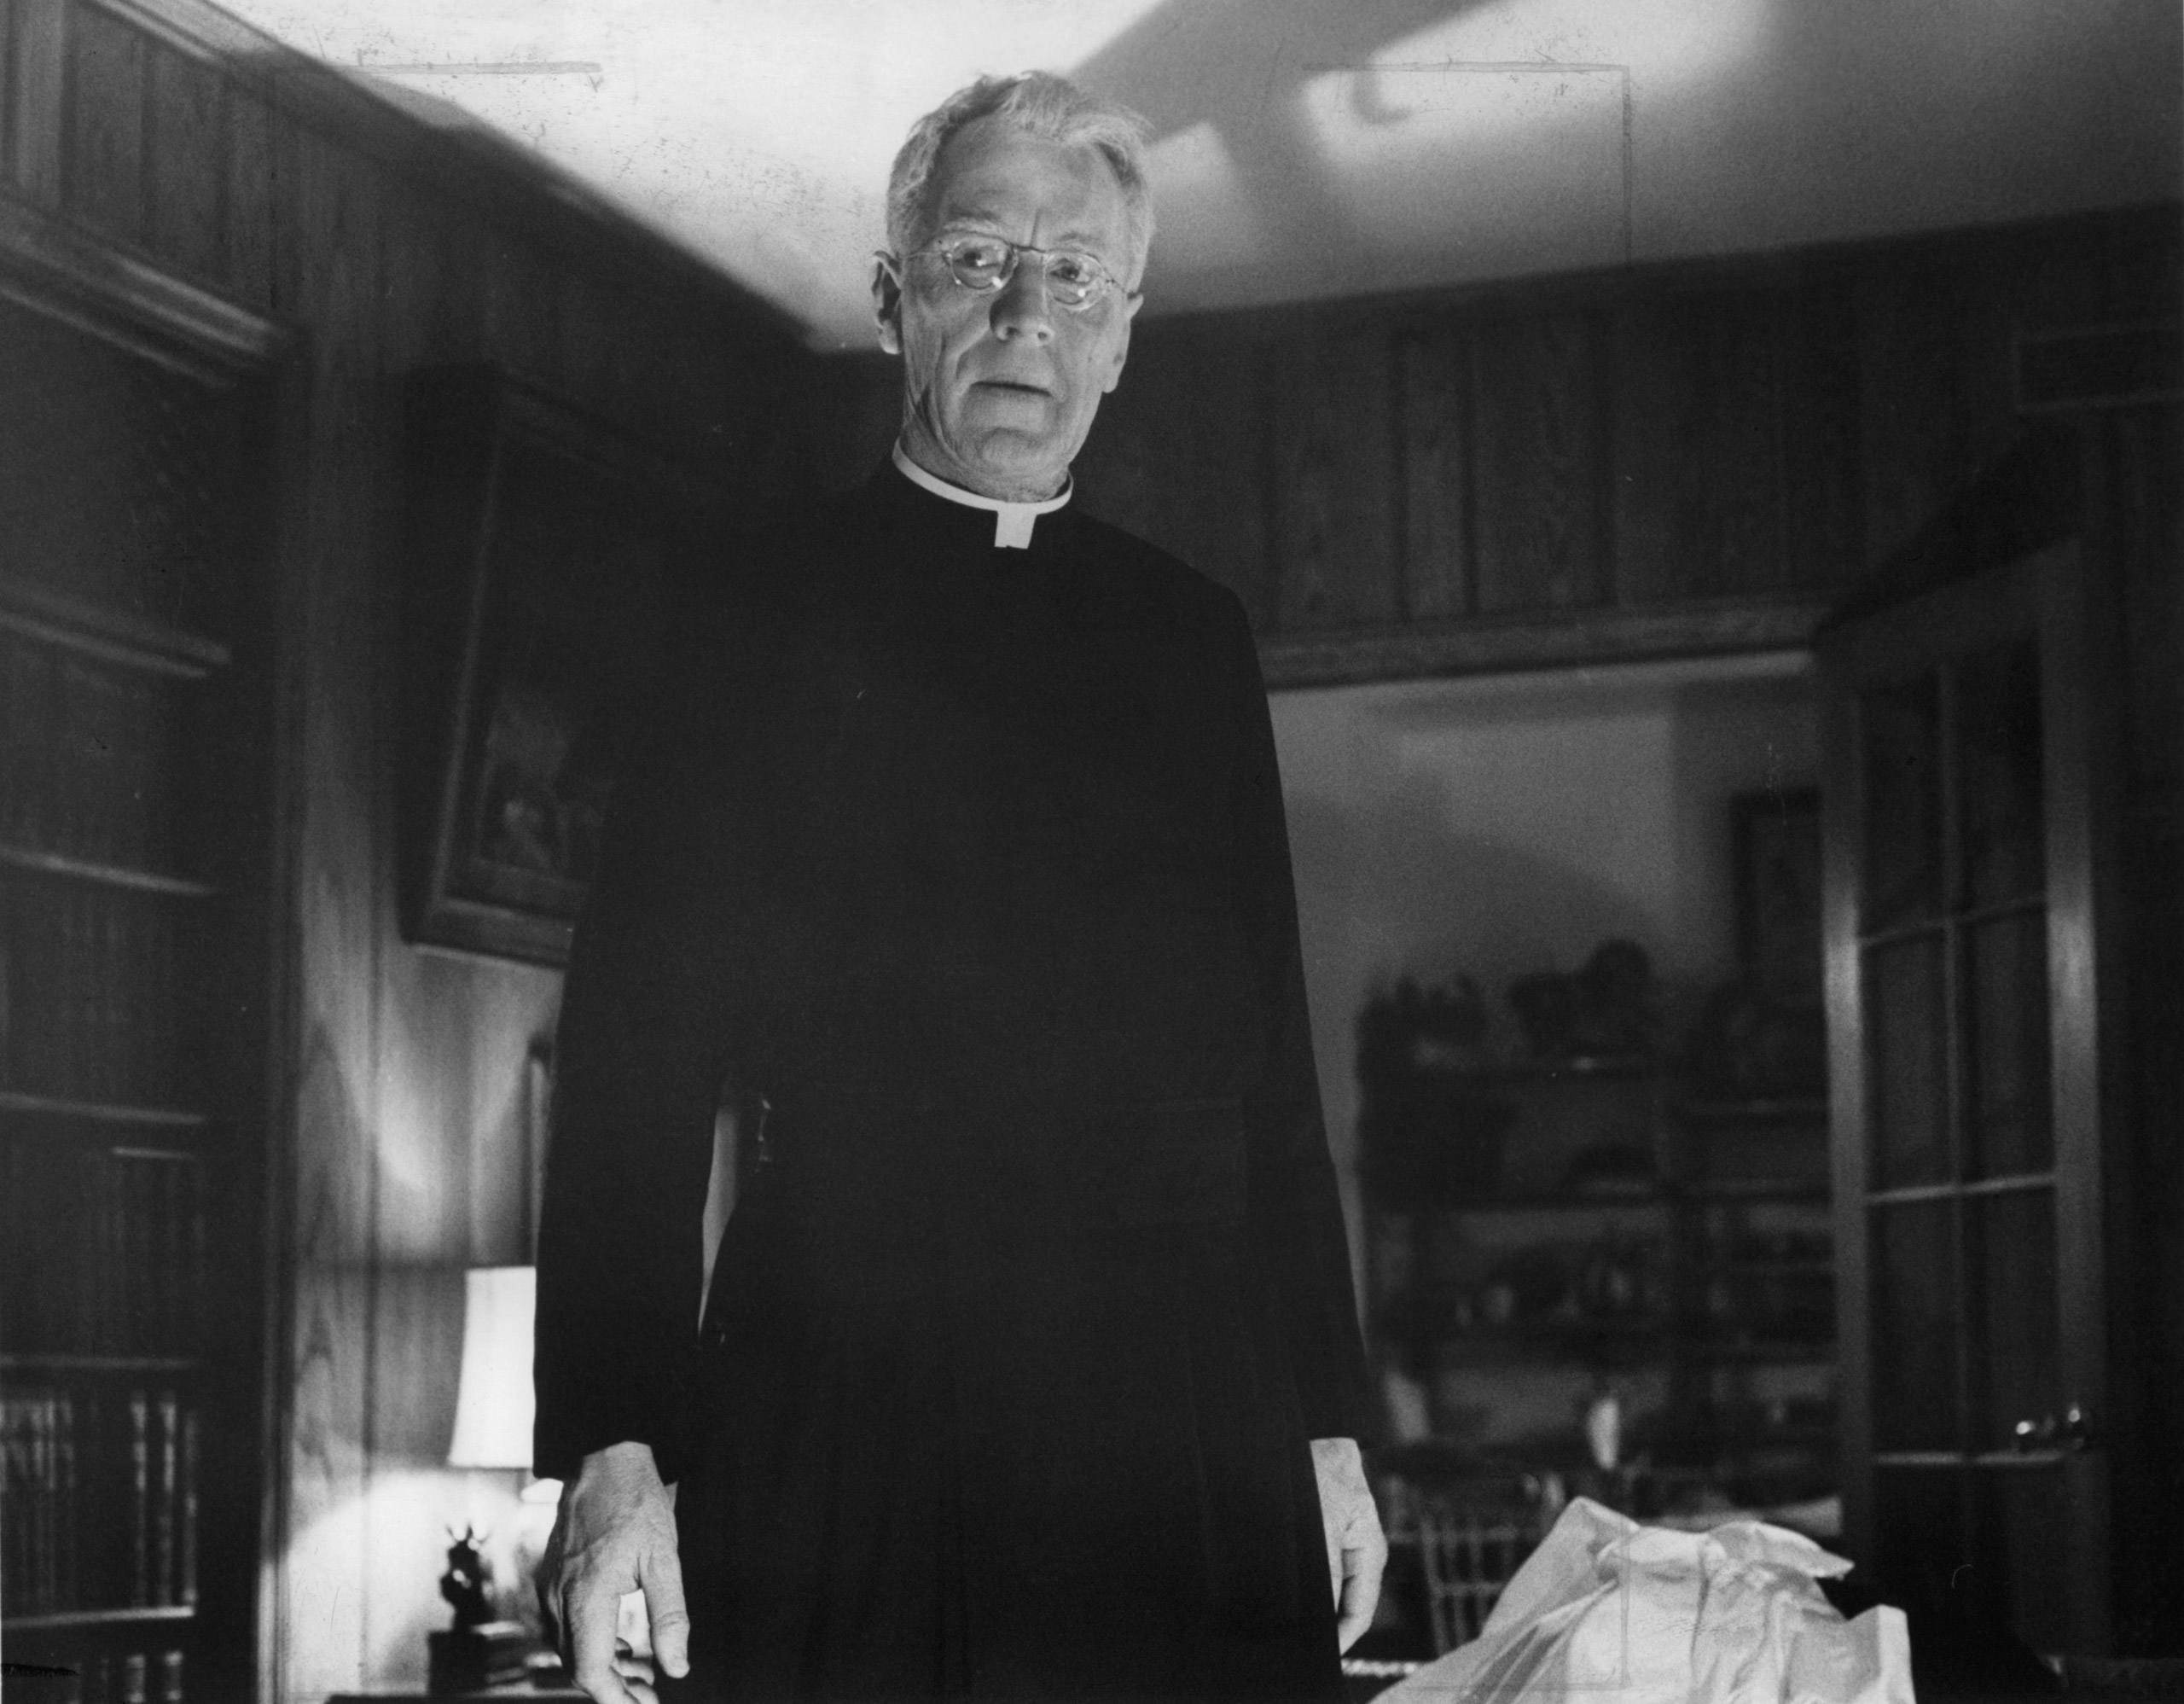 Max Von Sydow stands in priest uniform in a scene from the film 'The Exorcist', 1973.